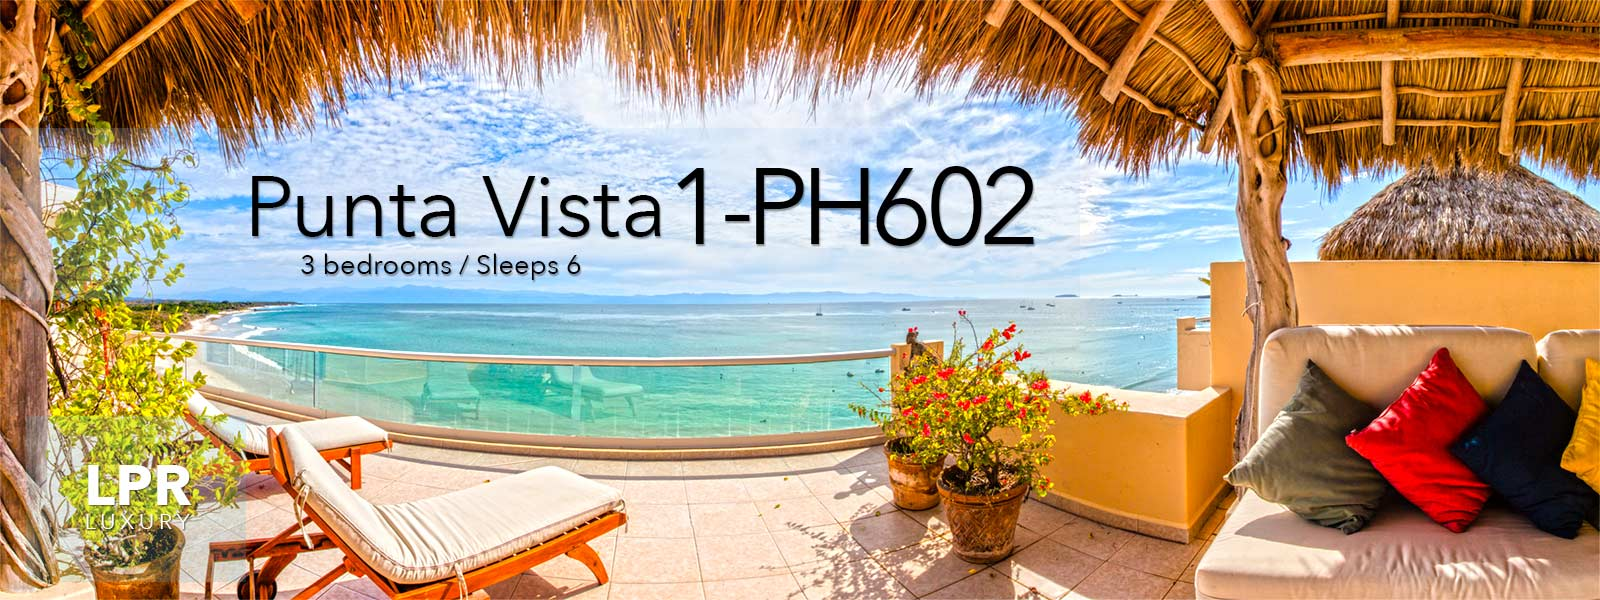 Punta Vista 1 - Penthouse 602 - Playa Punta de Mita - Condo for Sale